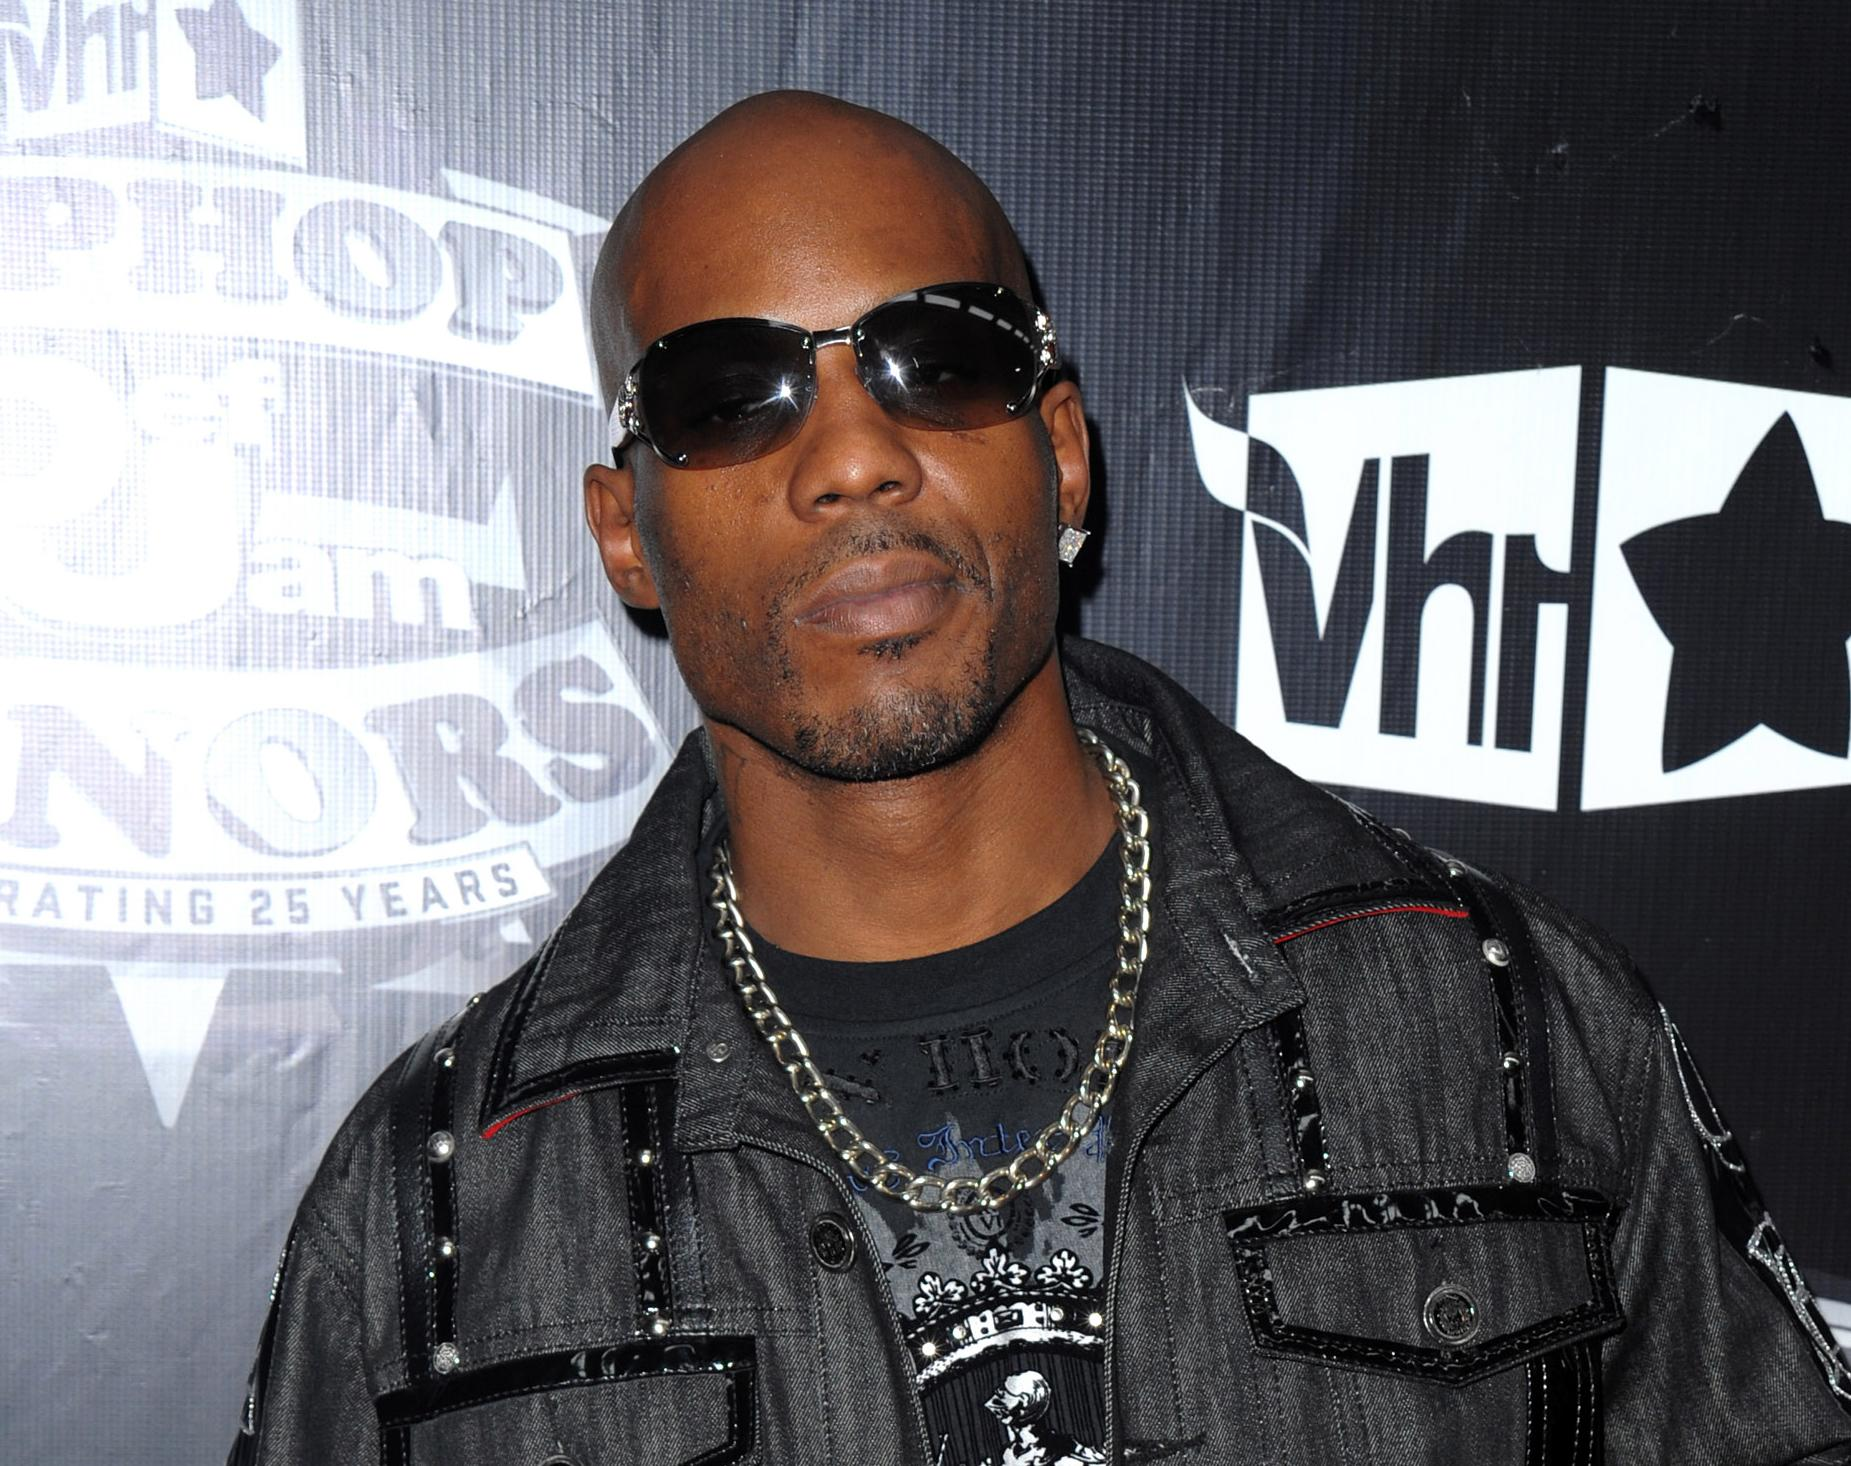 Rapper DMX revived by Narcan — the opioid antidote that stops an overdose in its tracks